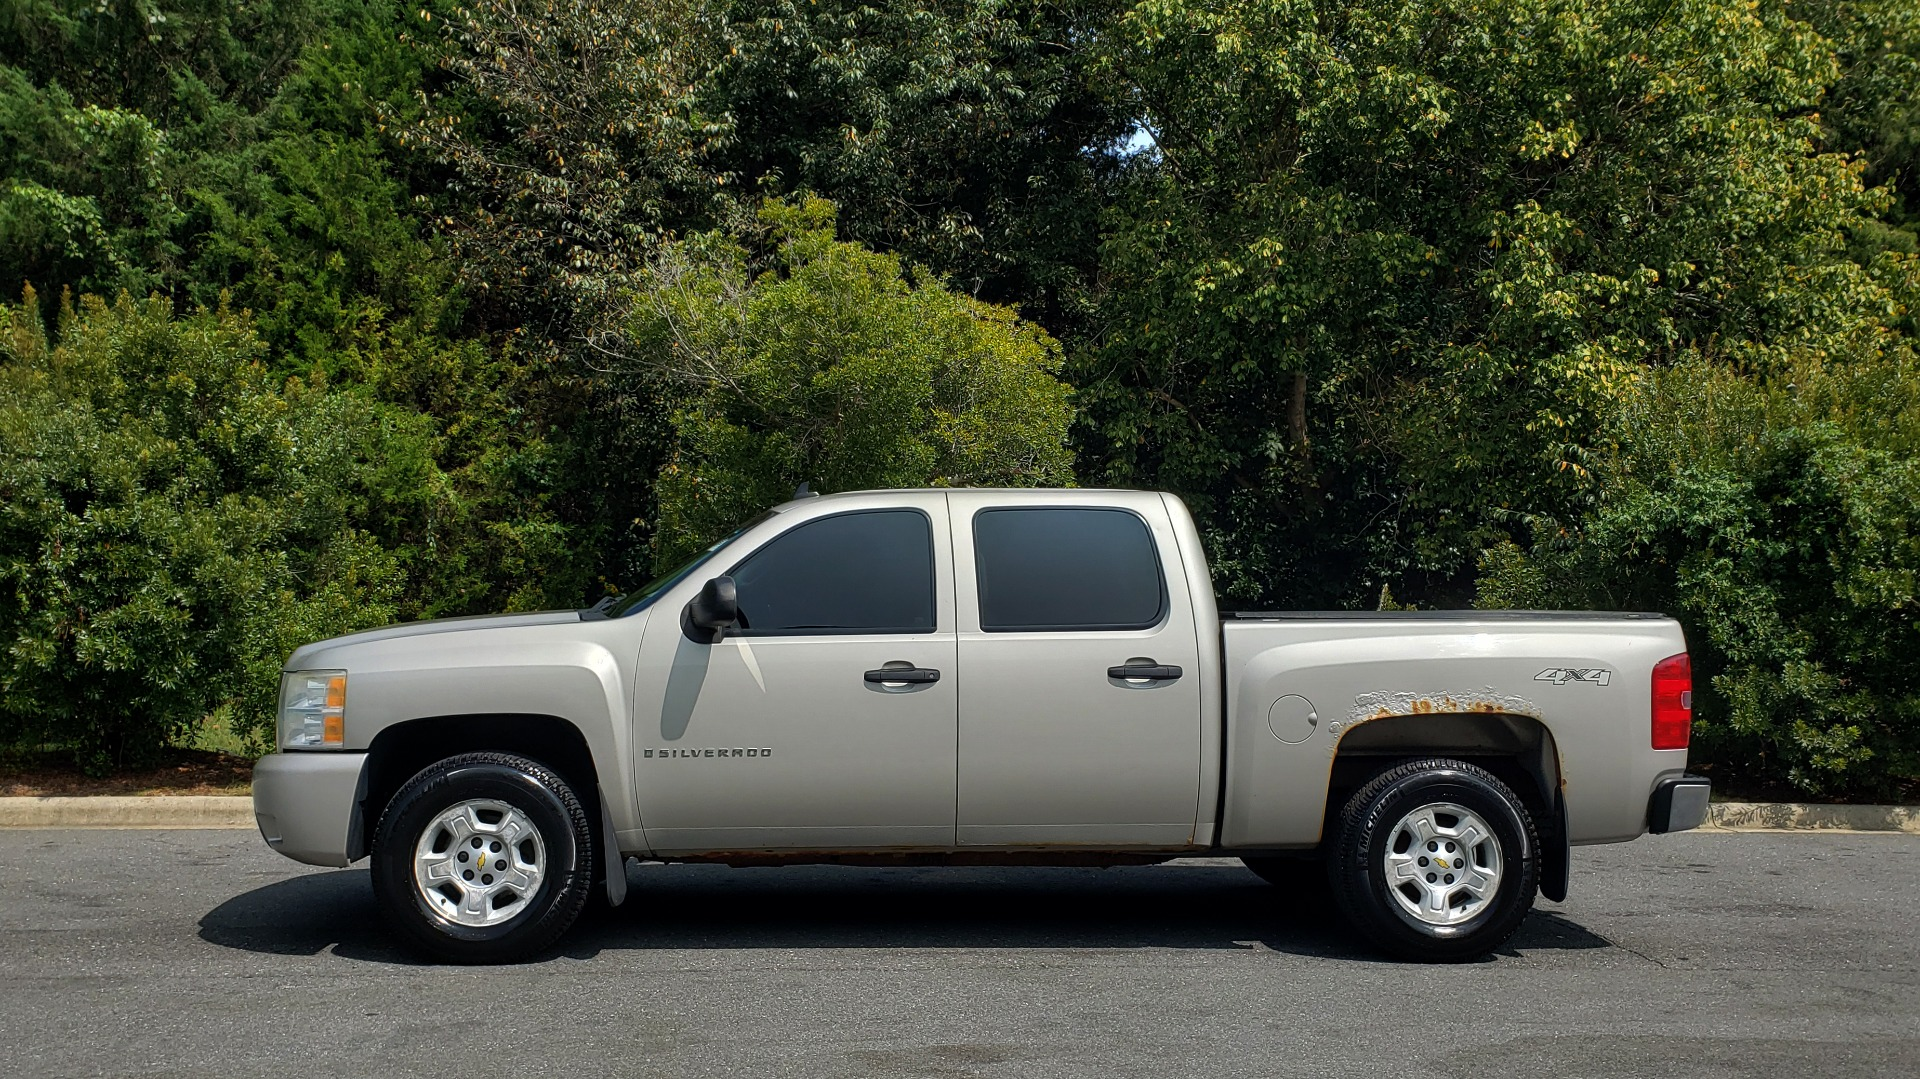 Used 2009 Chevrolet SILVERADO 1500 LT / CREWCAB / 5.3L V8 / 4WD / TRAILER PKG / REARVIEW for sale $10,595 at Formula Imports in Charlotte NC 28227 2